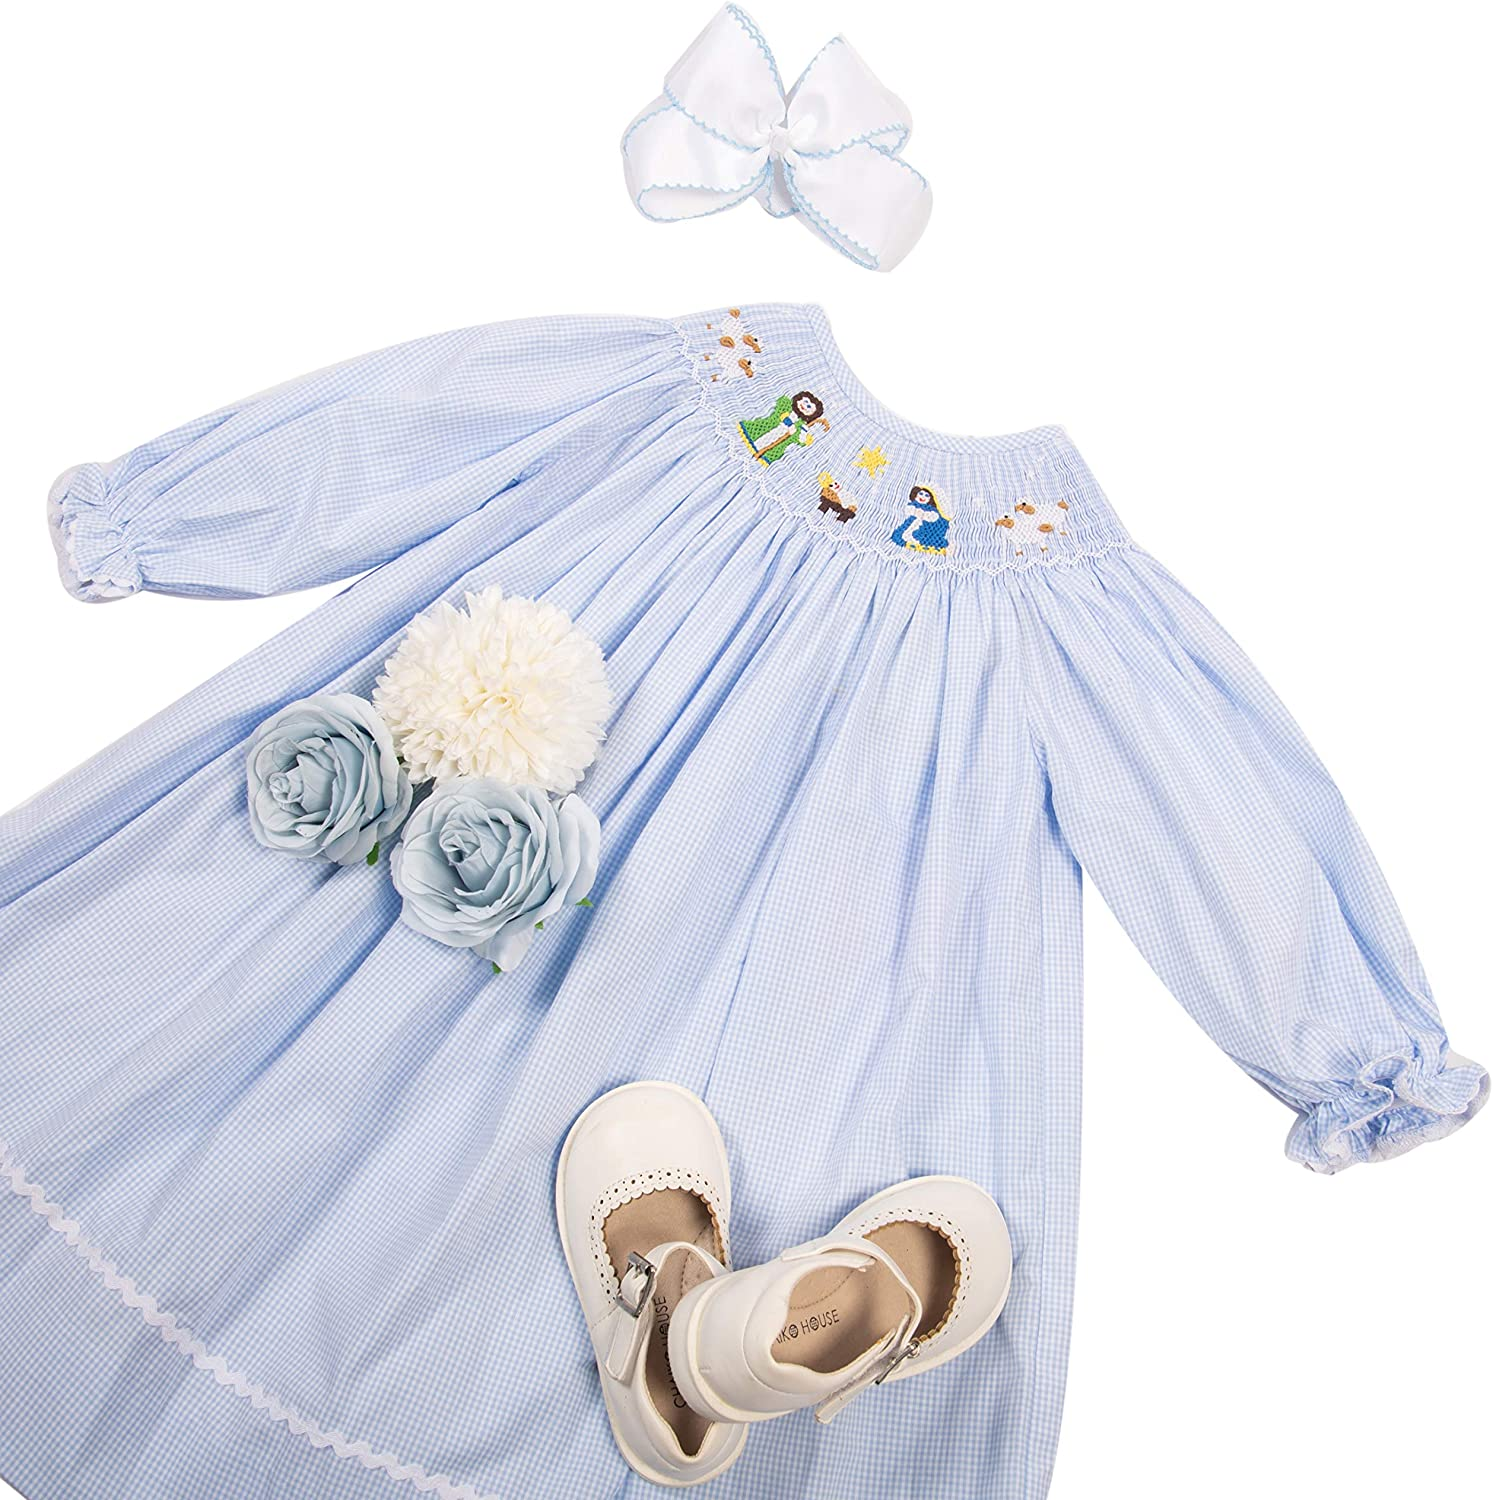 Babeeni Baby Girl Smocked Dress in Bishop Style for Christmas Season with Xmas Nativity Ceremony Hand Smocked Patterns